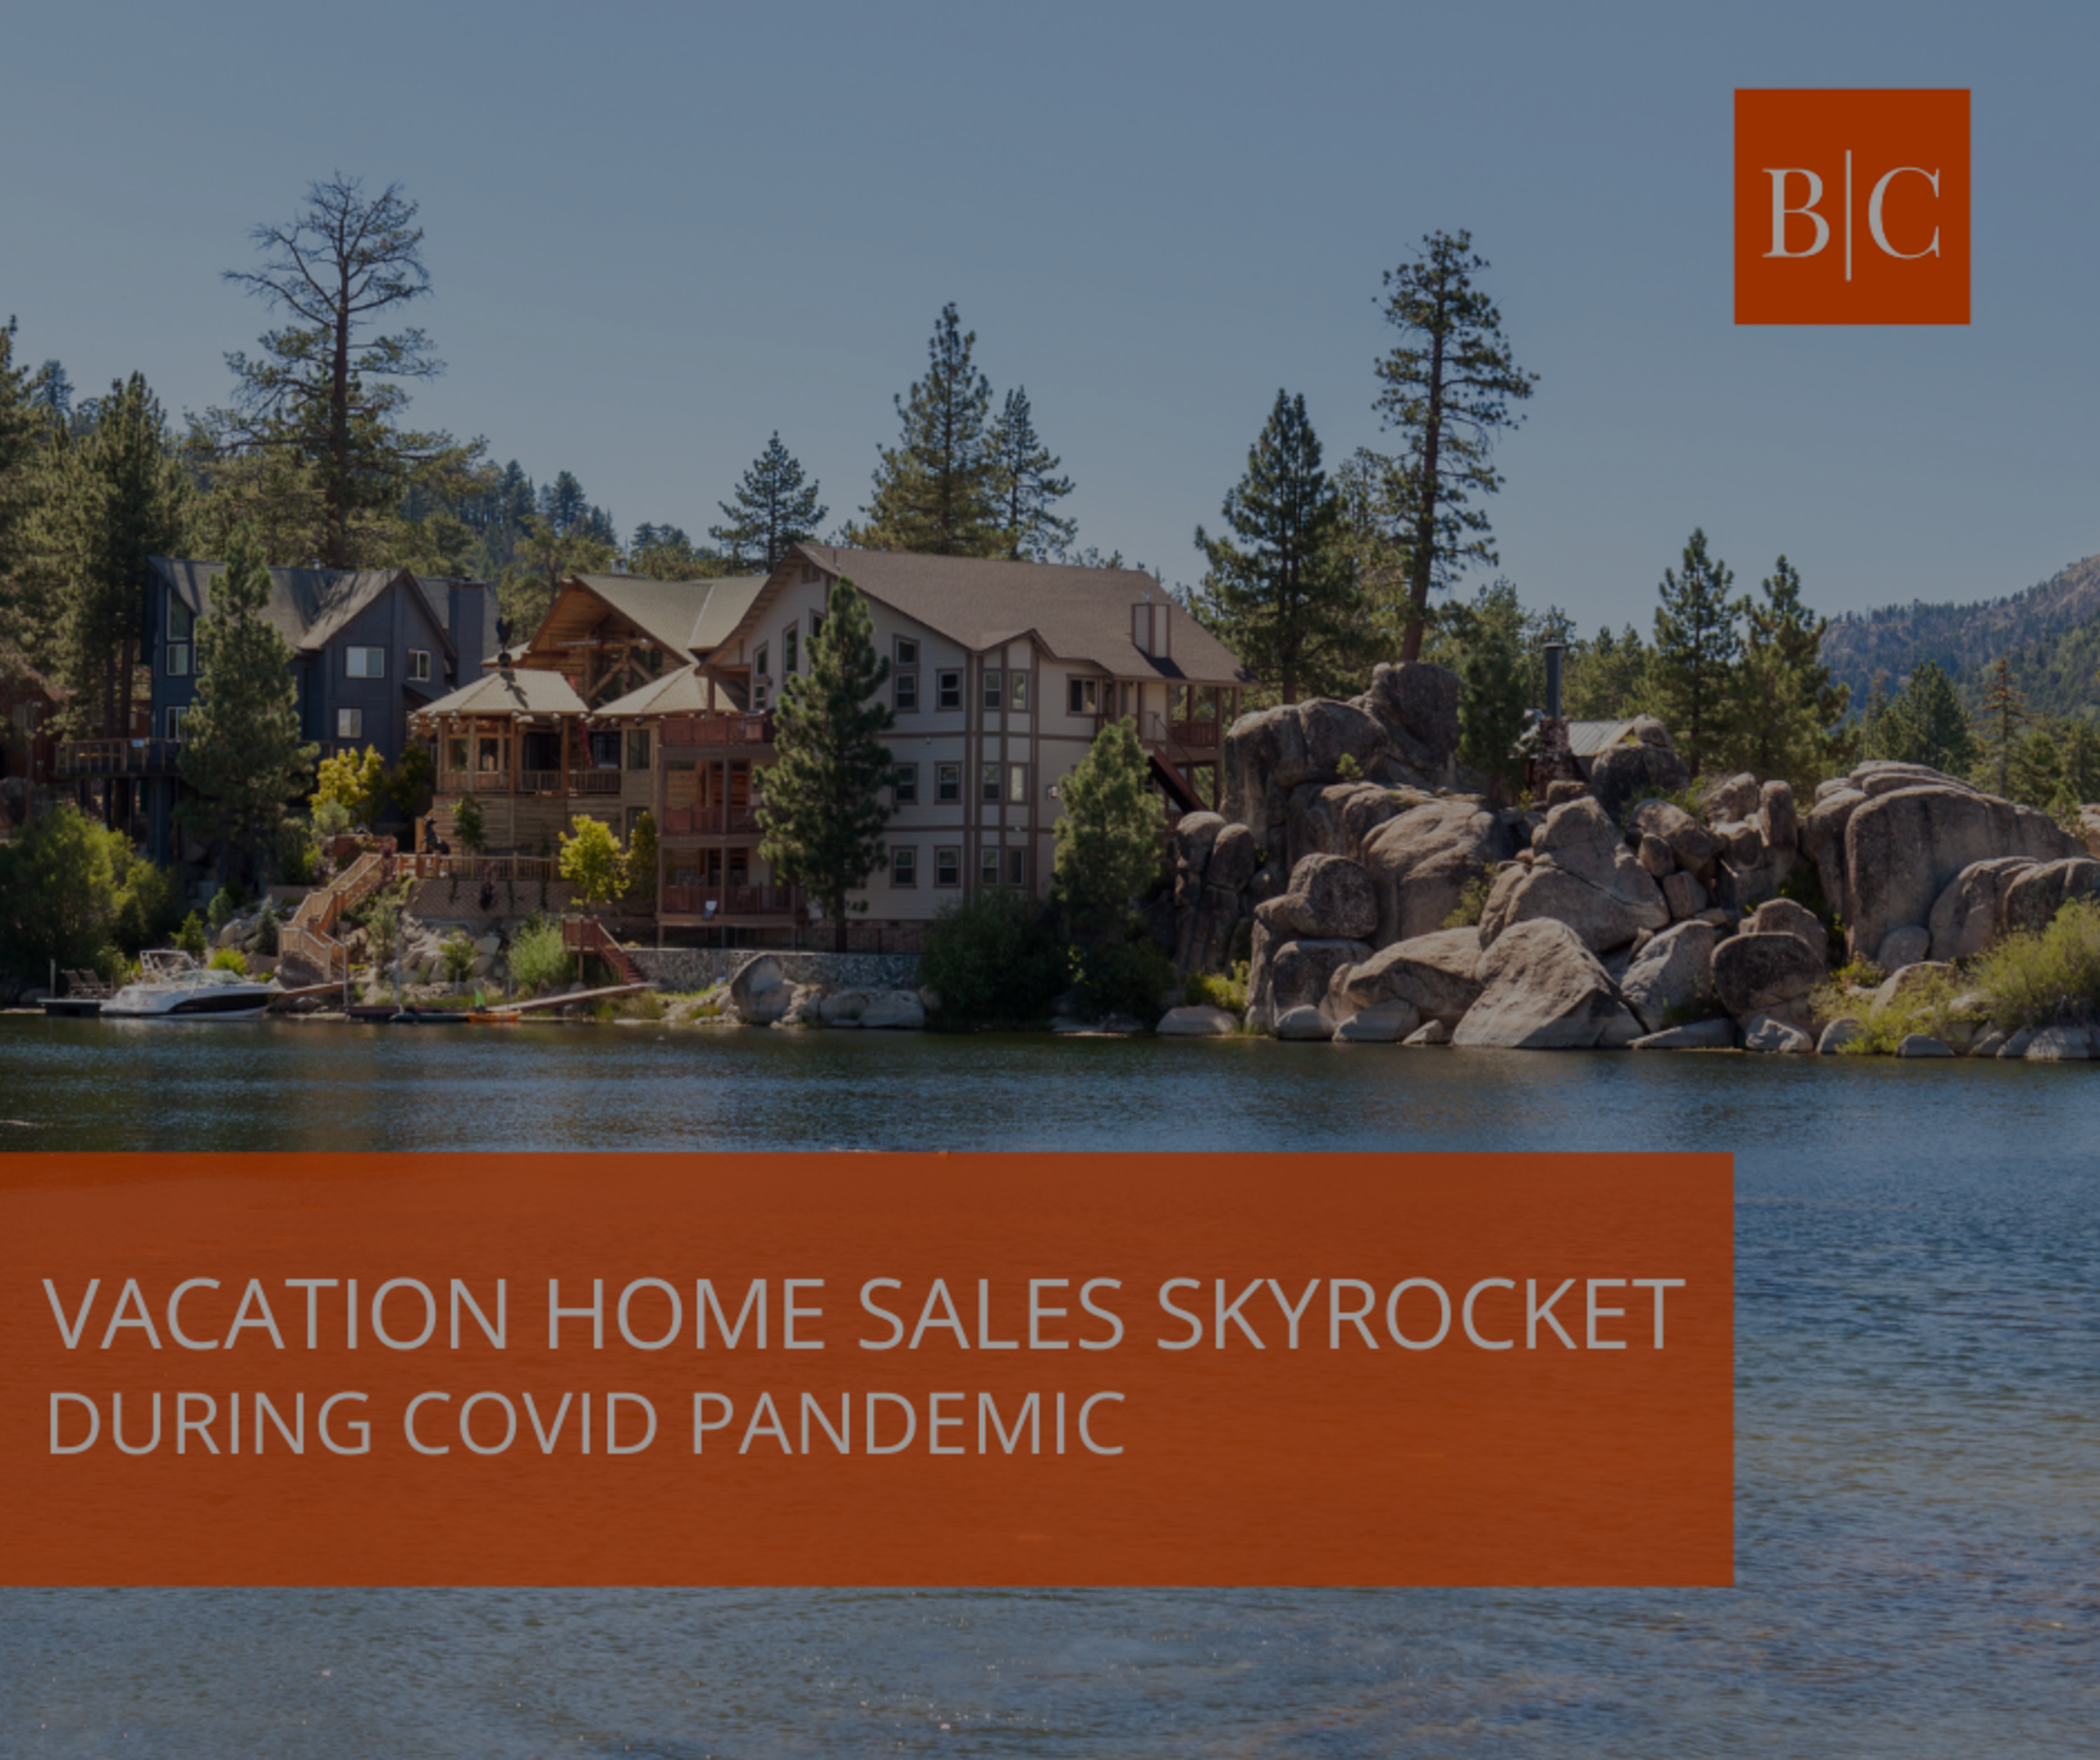 Vacation Home Sales Skyrocket During Covid-19 Pandemic